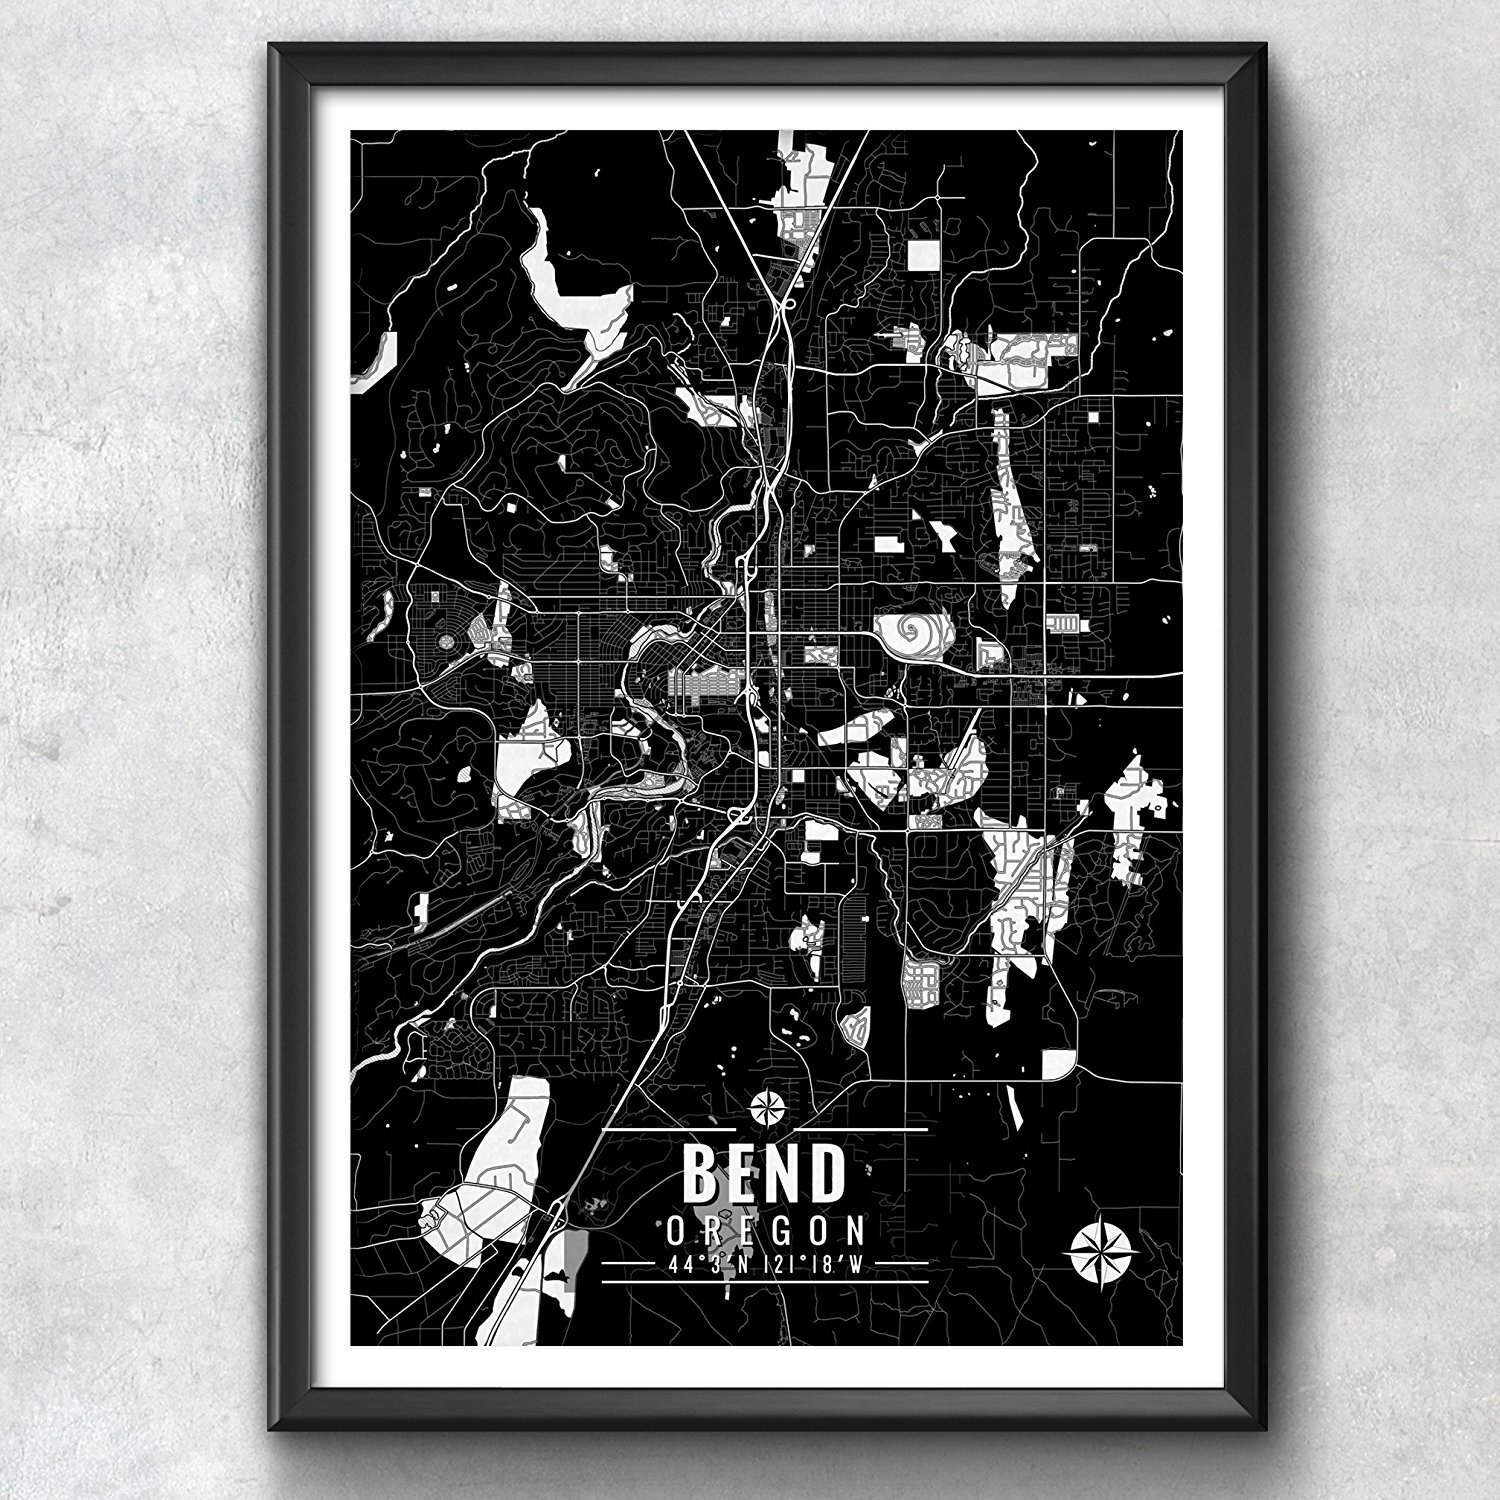 Bend Oregon Map with Coordinates, Bend Map Art, Bend Wall Art, Bend Map, Map Art, Map Print, Bend Print, Bend Art, Bend Gift, Map